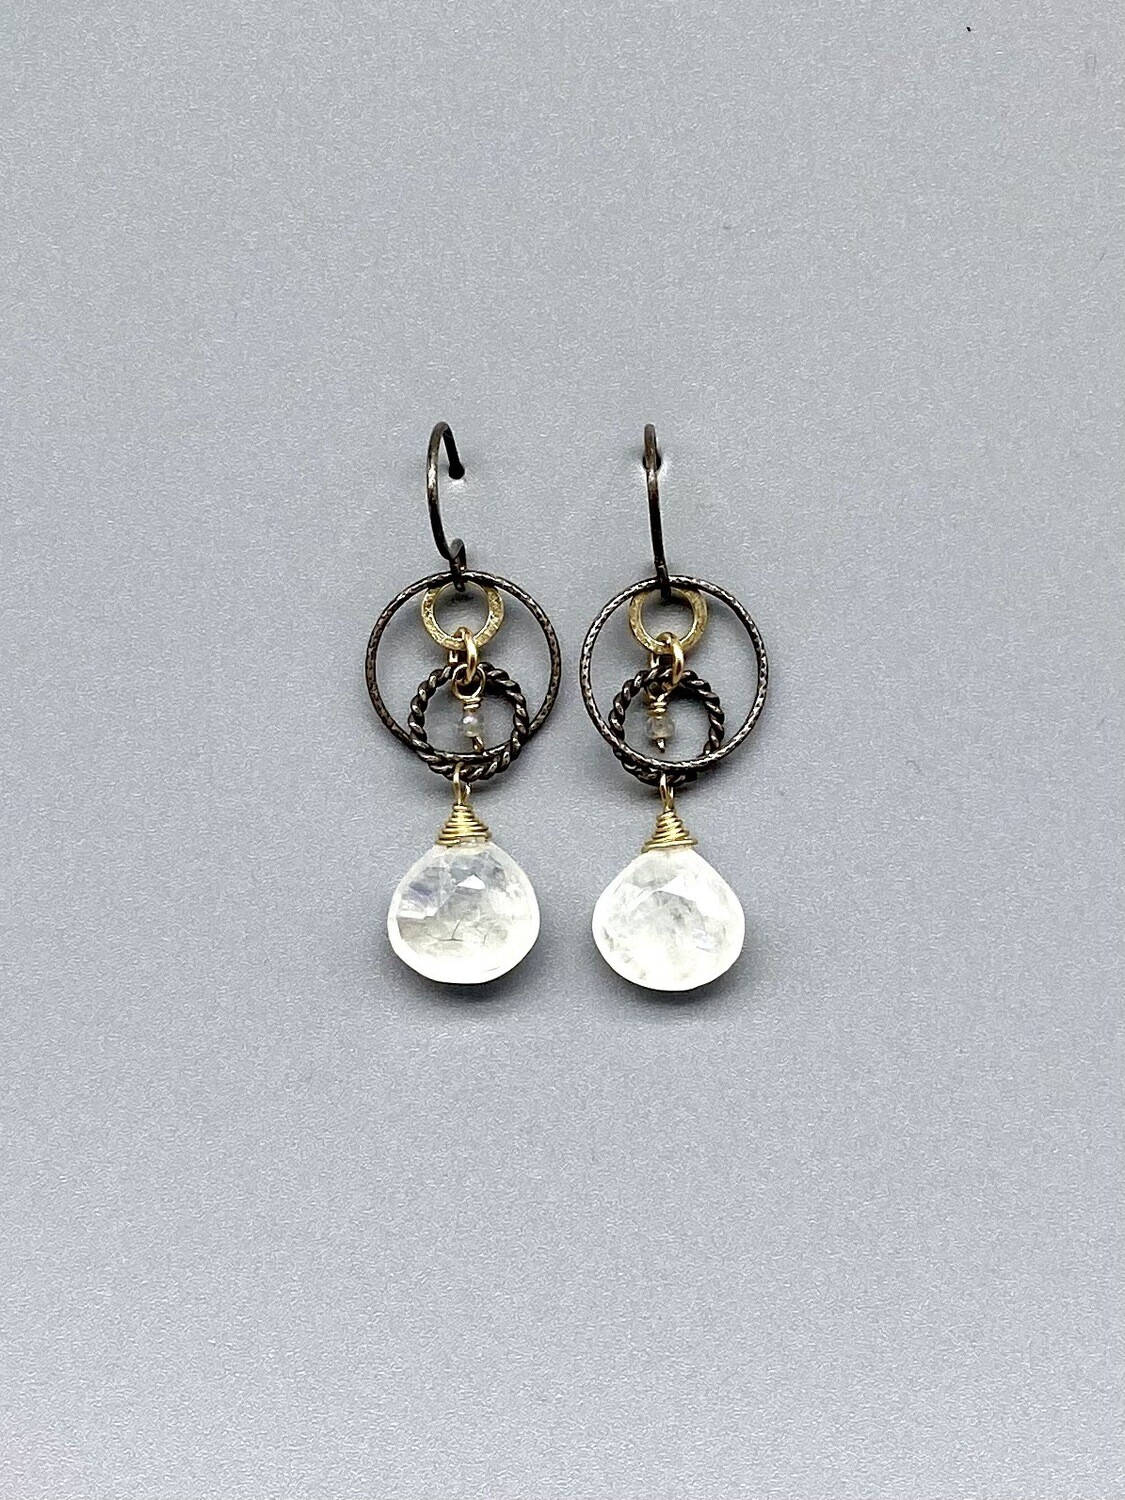 Moonstone Triple Circles Earrings, Sterling Silver w/Vermeil Accents -  Calliope - Seattle, WA